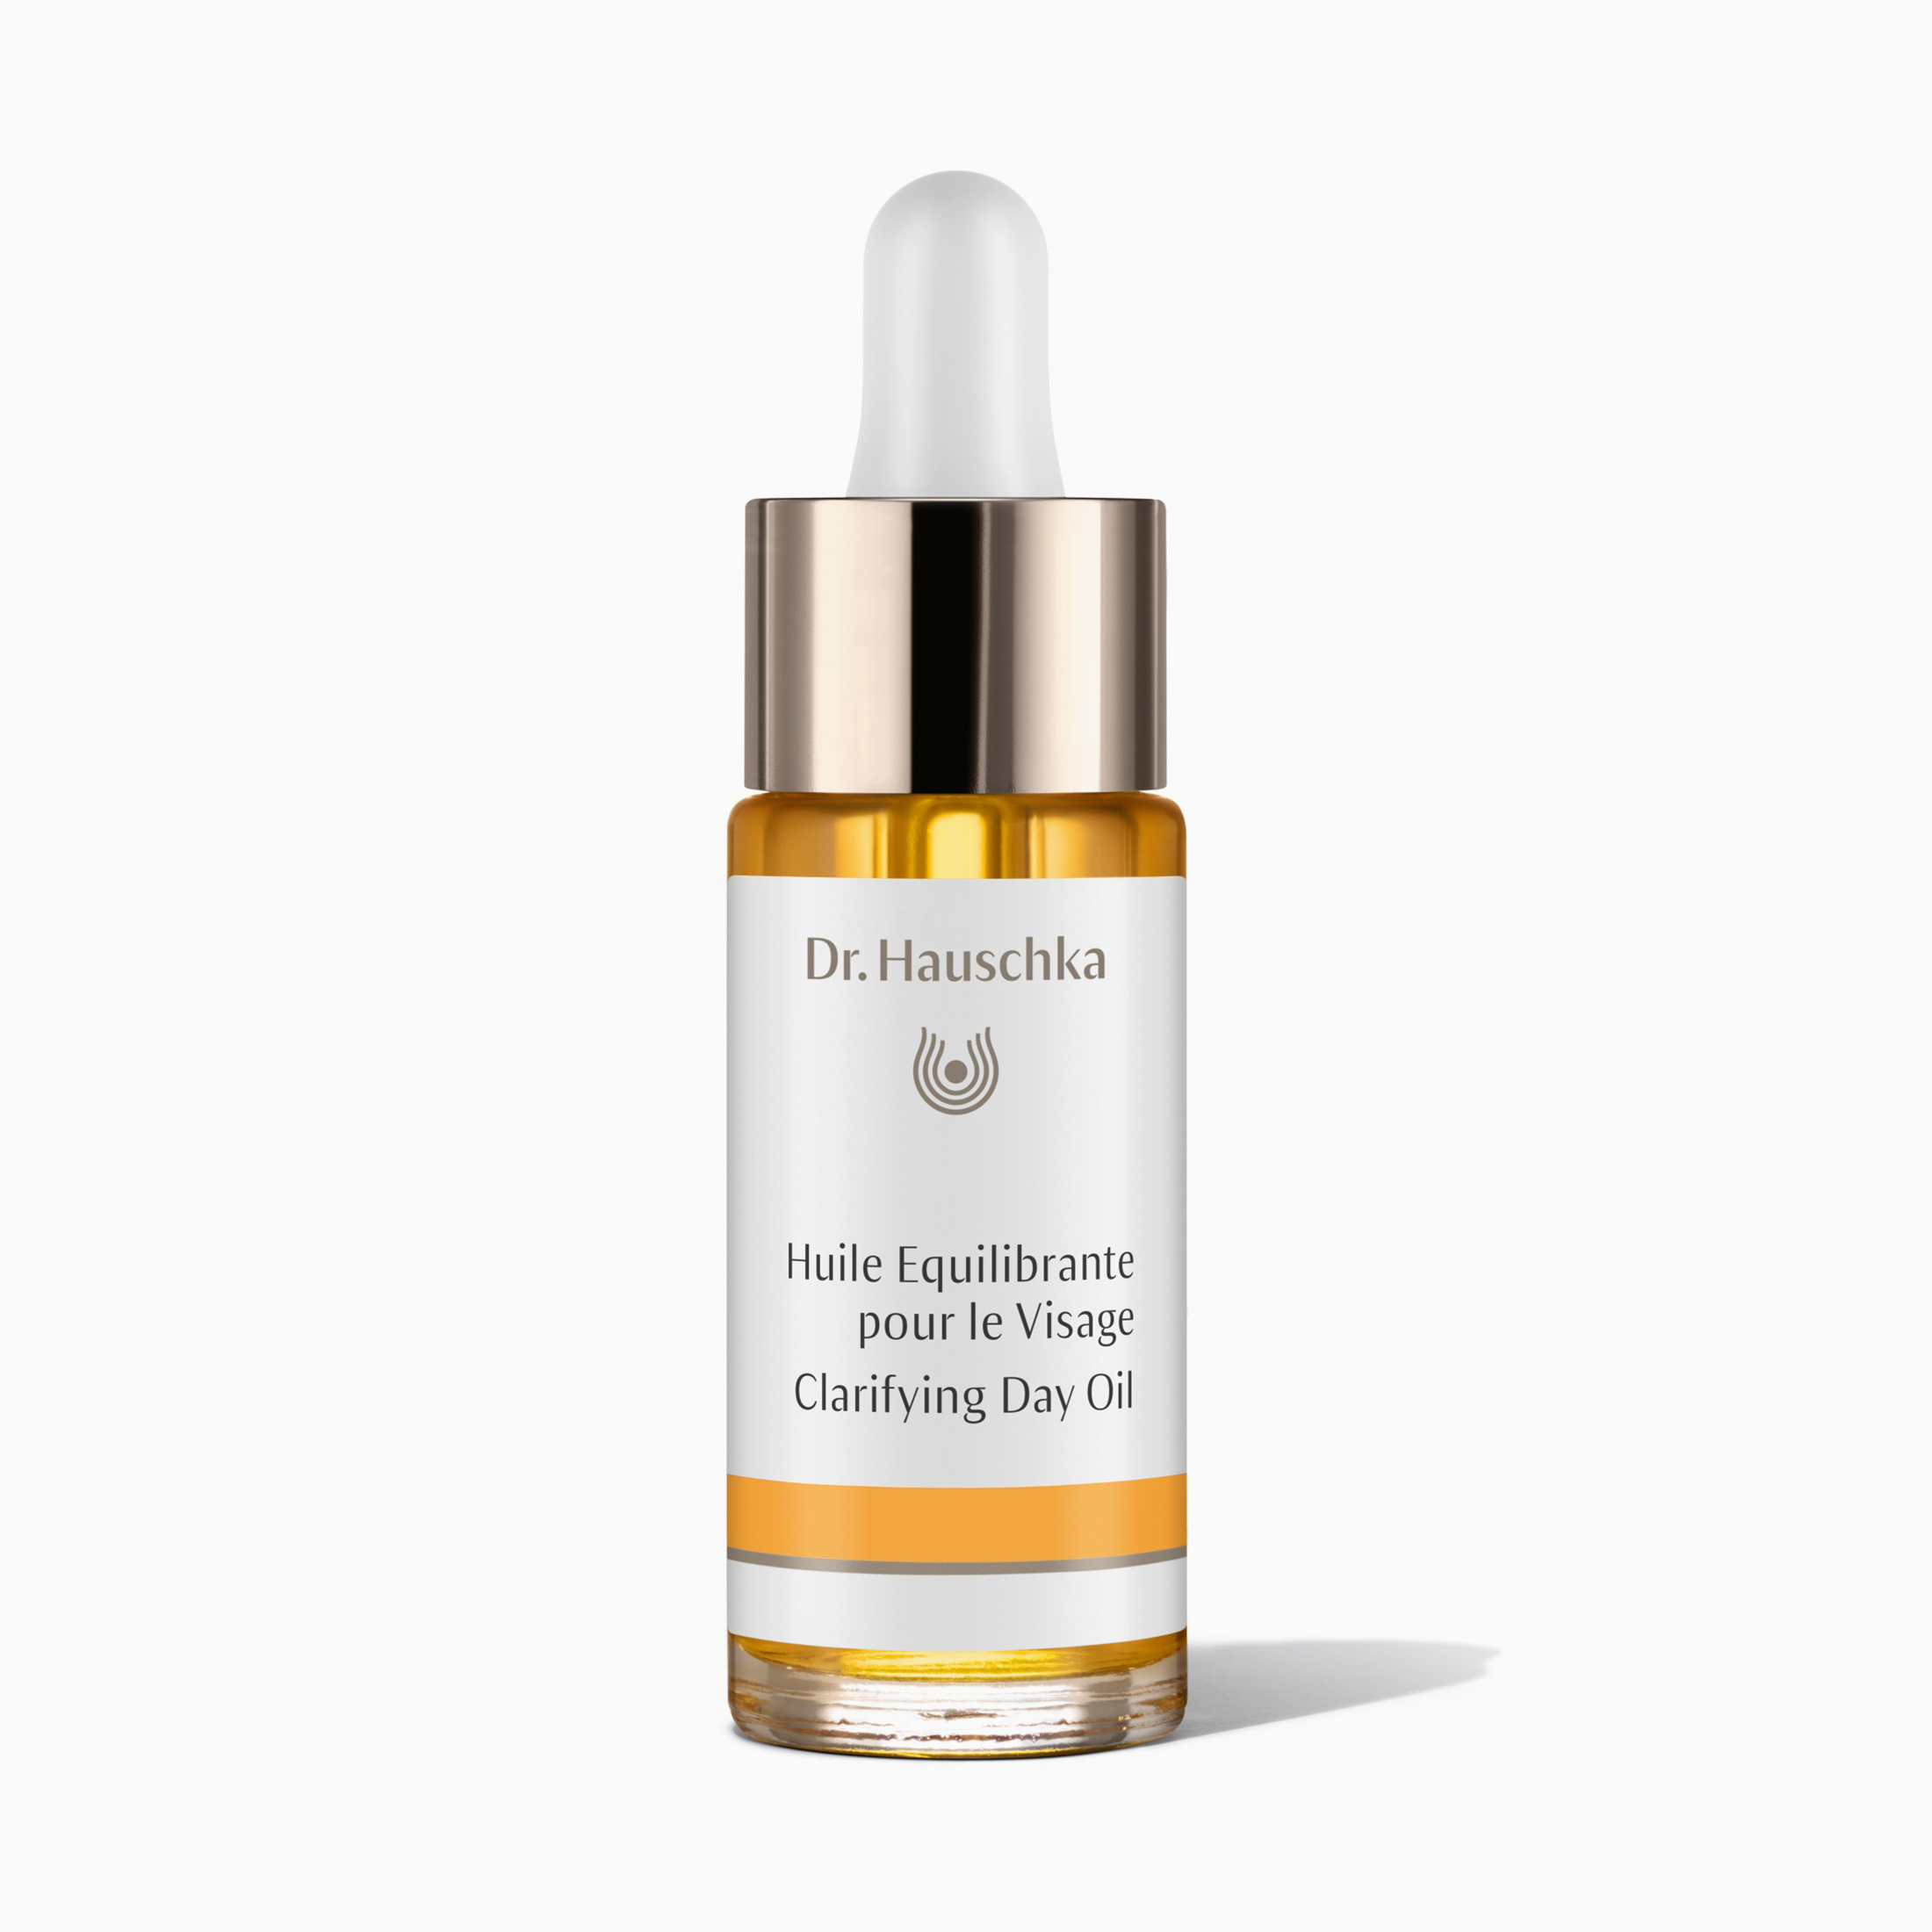 Dr. Hauschka Clarifying Day Oil